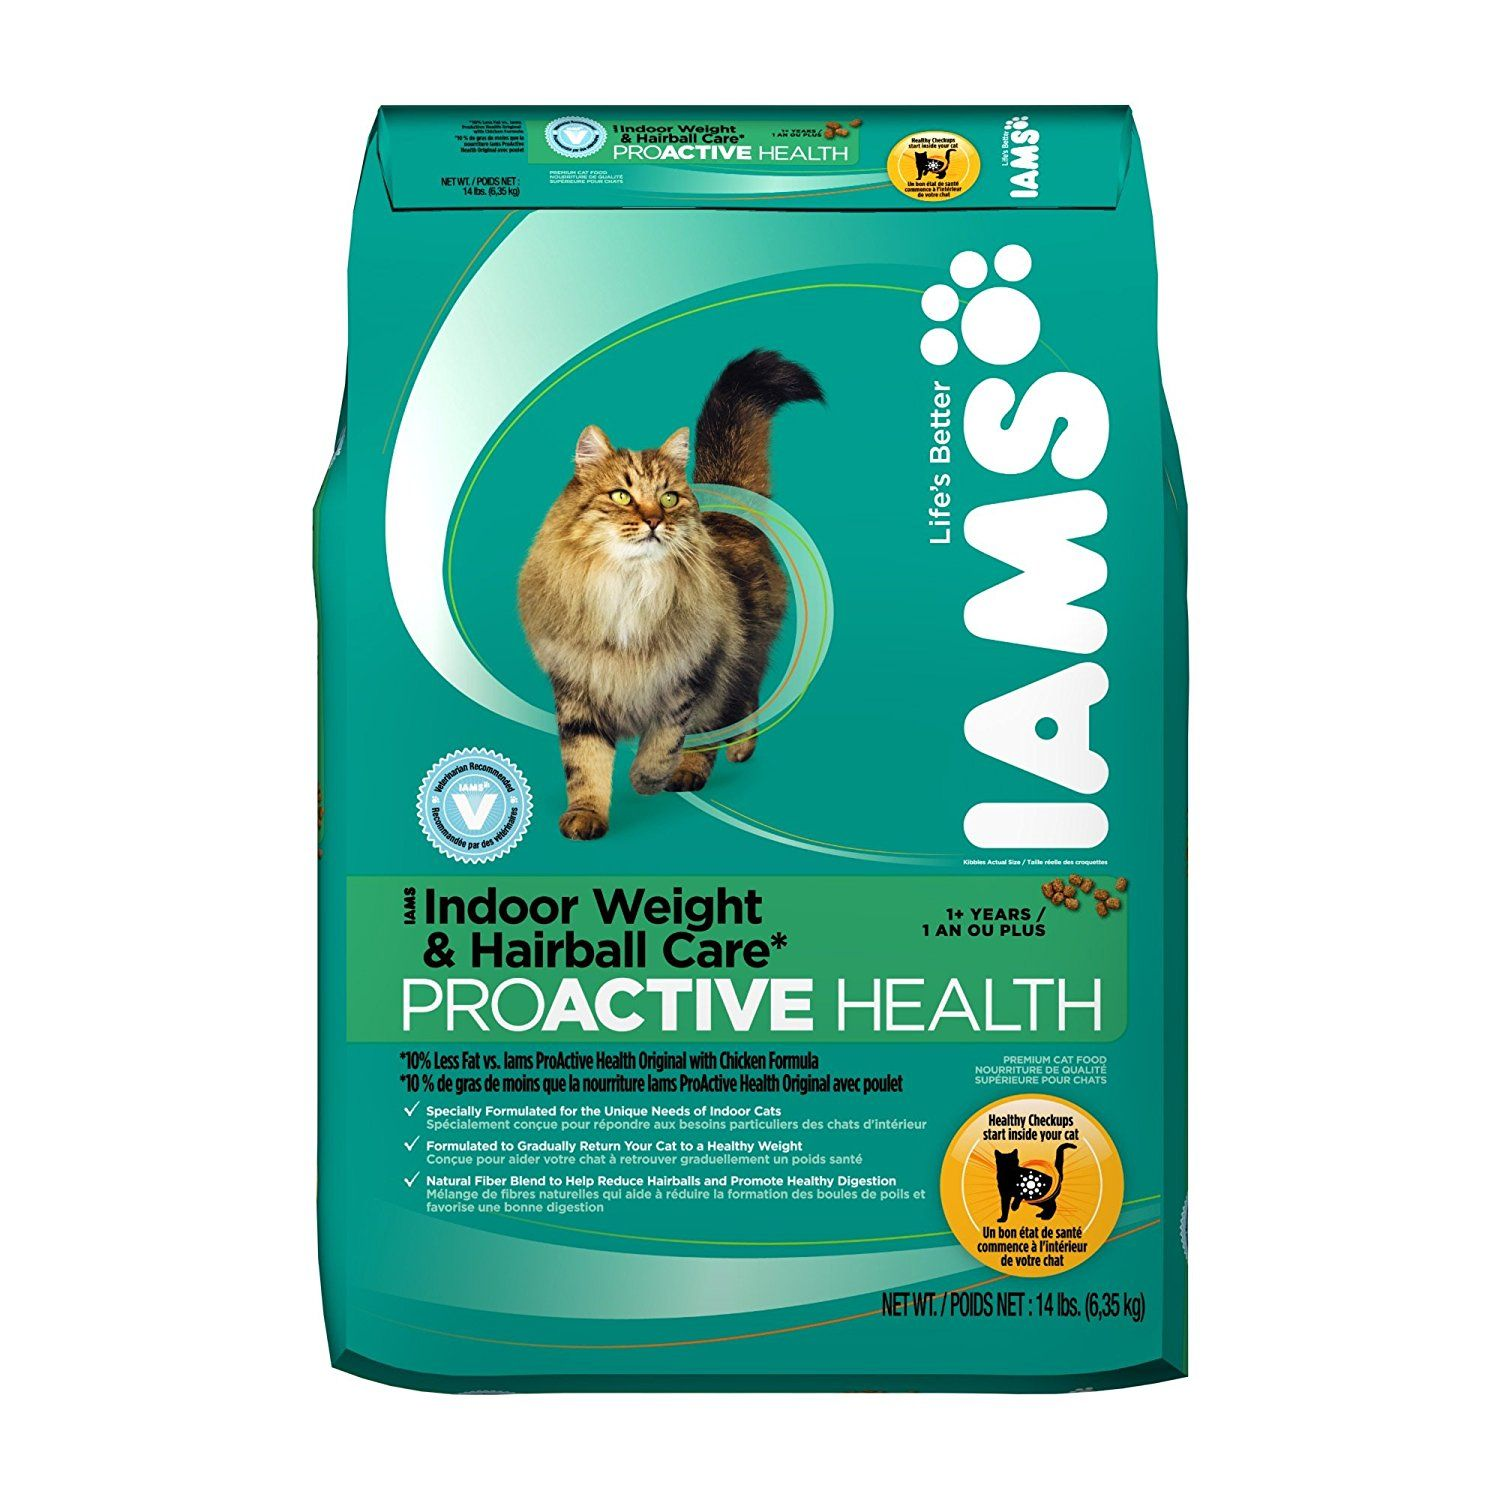 IAMS PROACTIVE HEALTH Adult Indoor Weight and Hairball